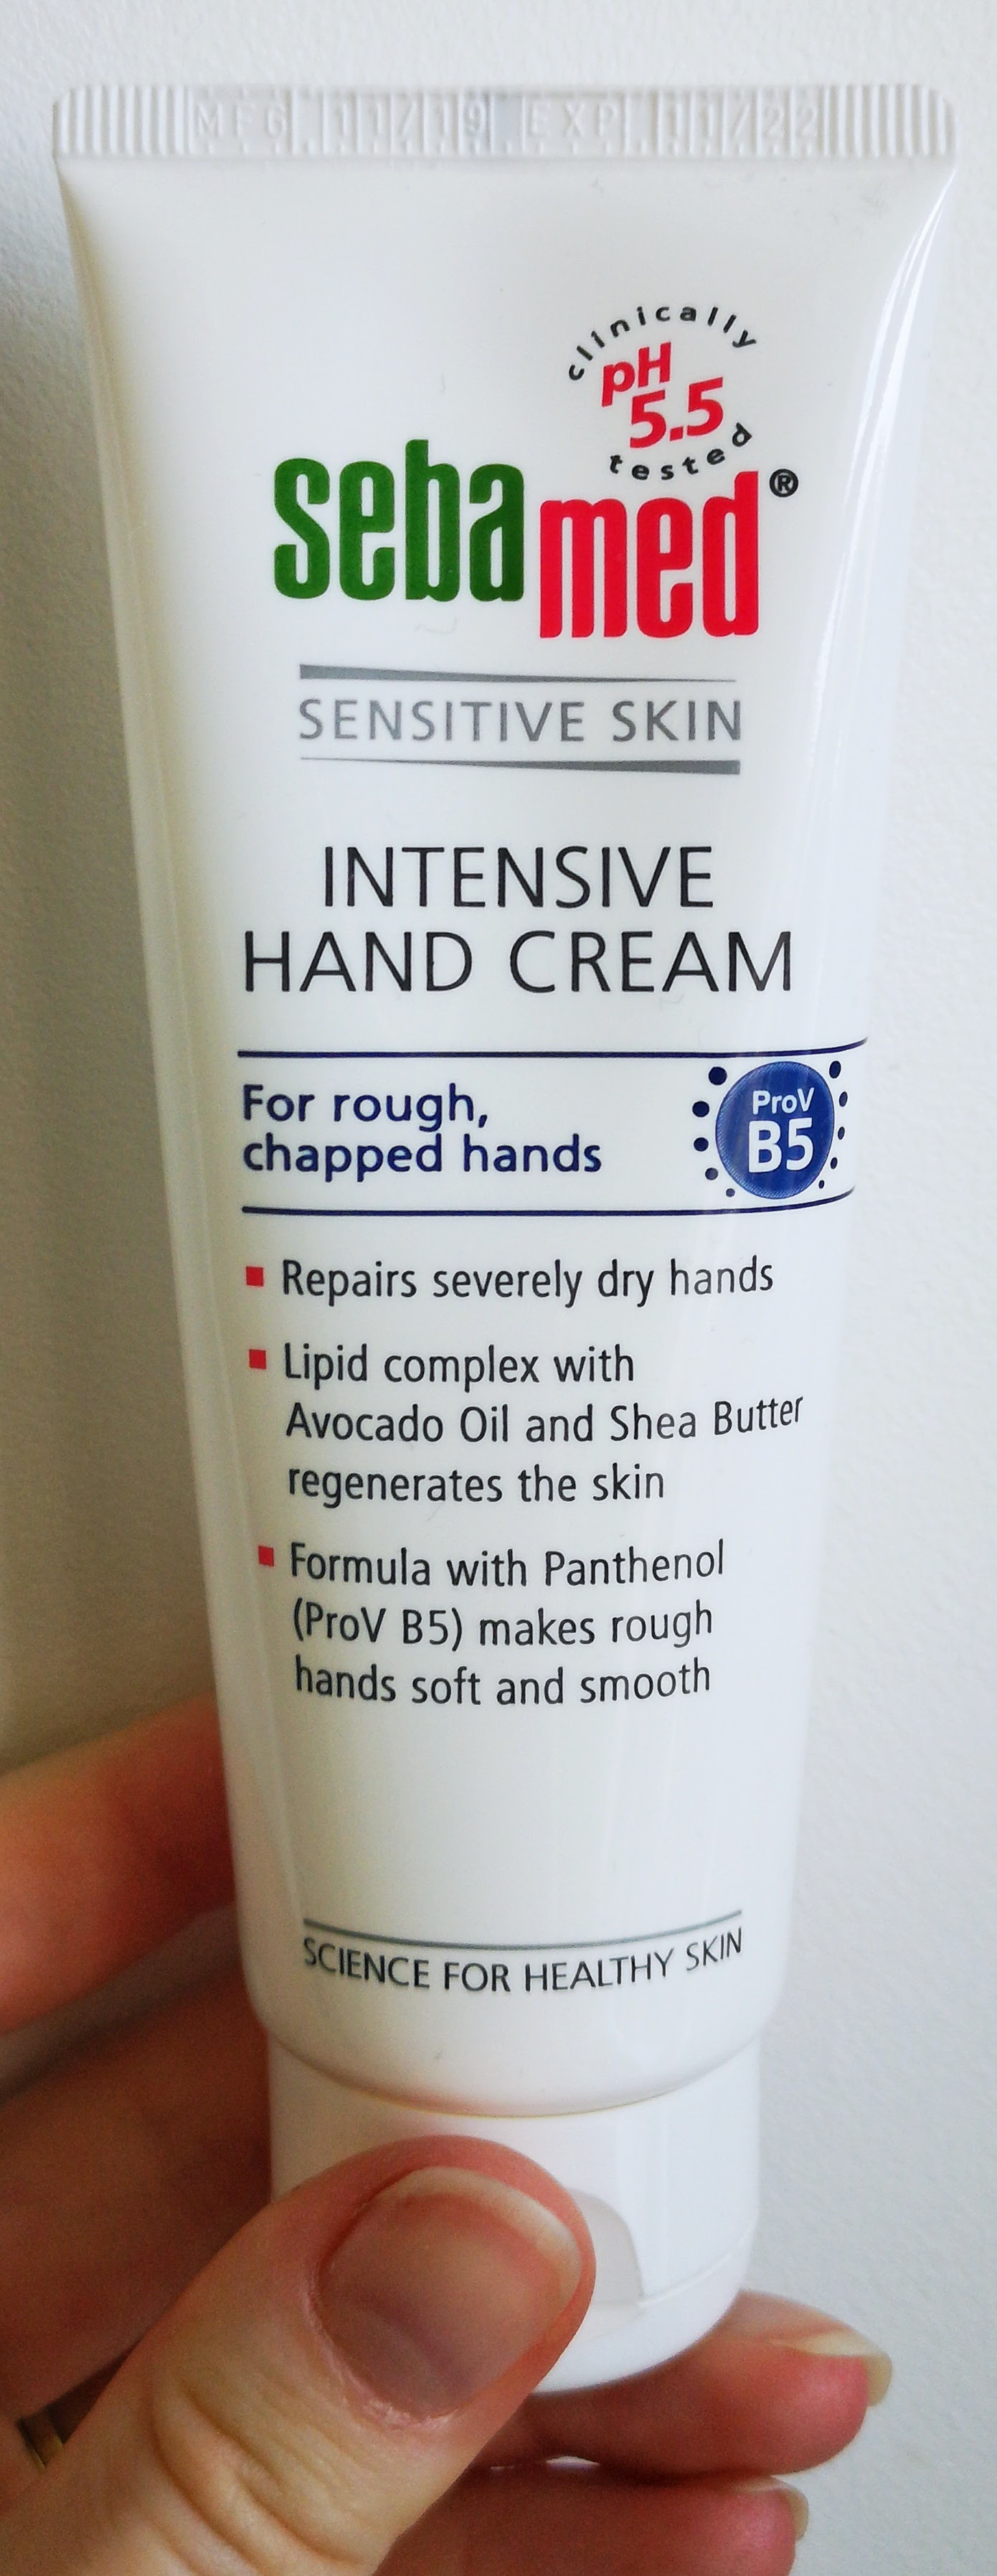 Sebamed: Beat dry hands with this hand cream | Milled